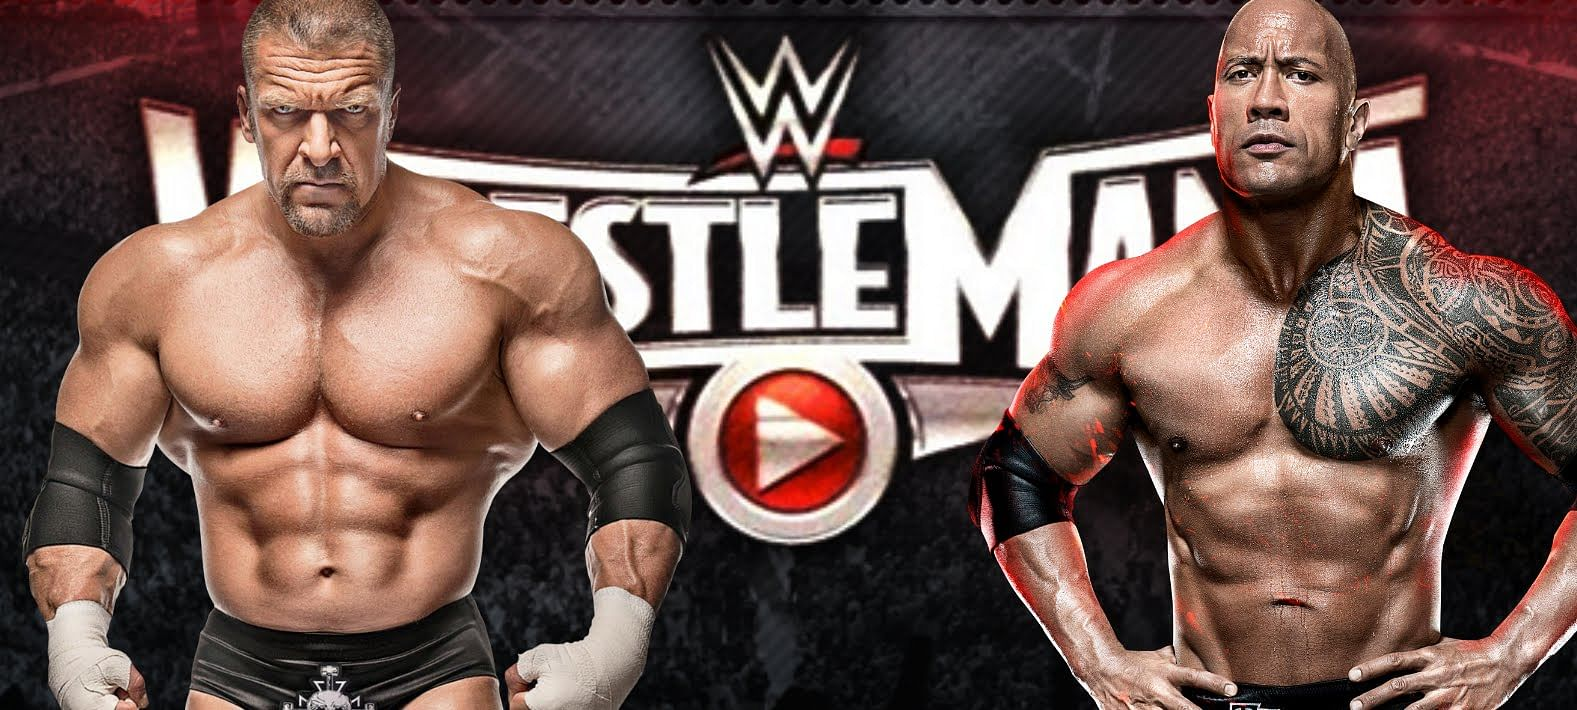 Updates on The Rock, Sting and Triple H regarding Wrestlemania 31